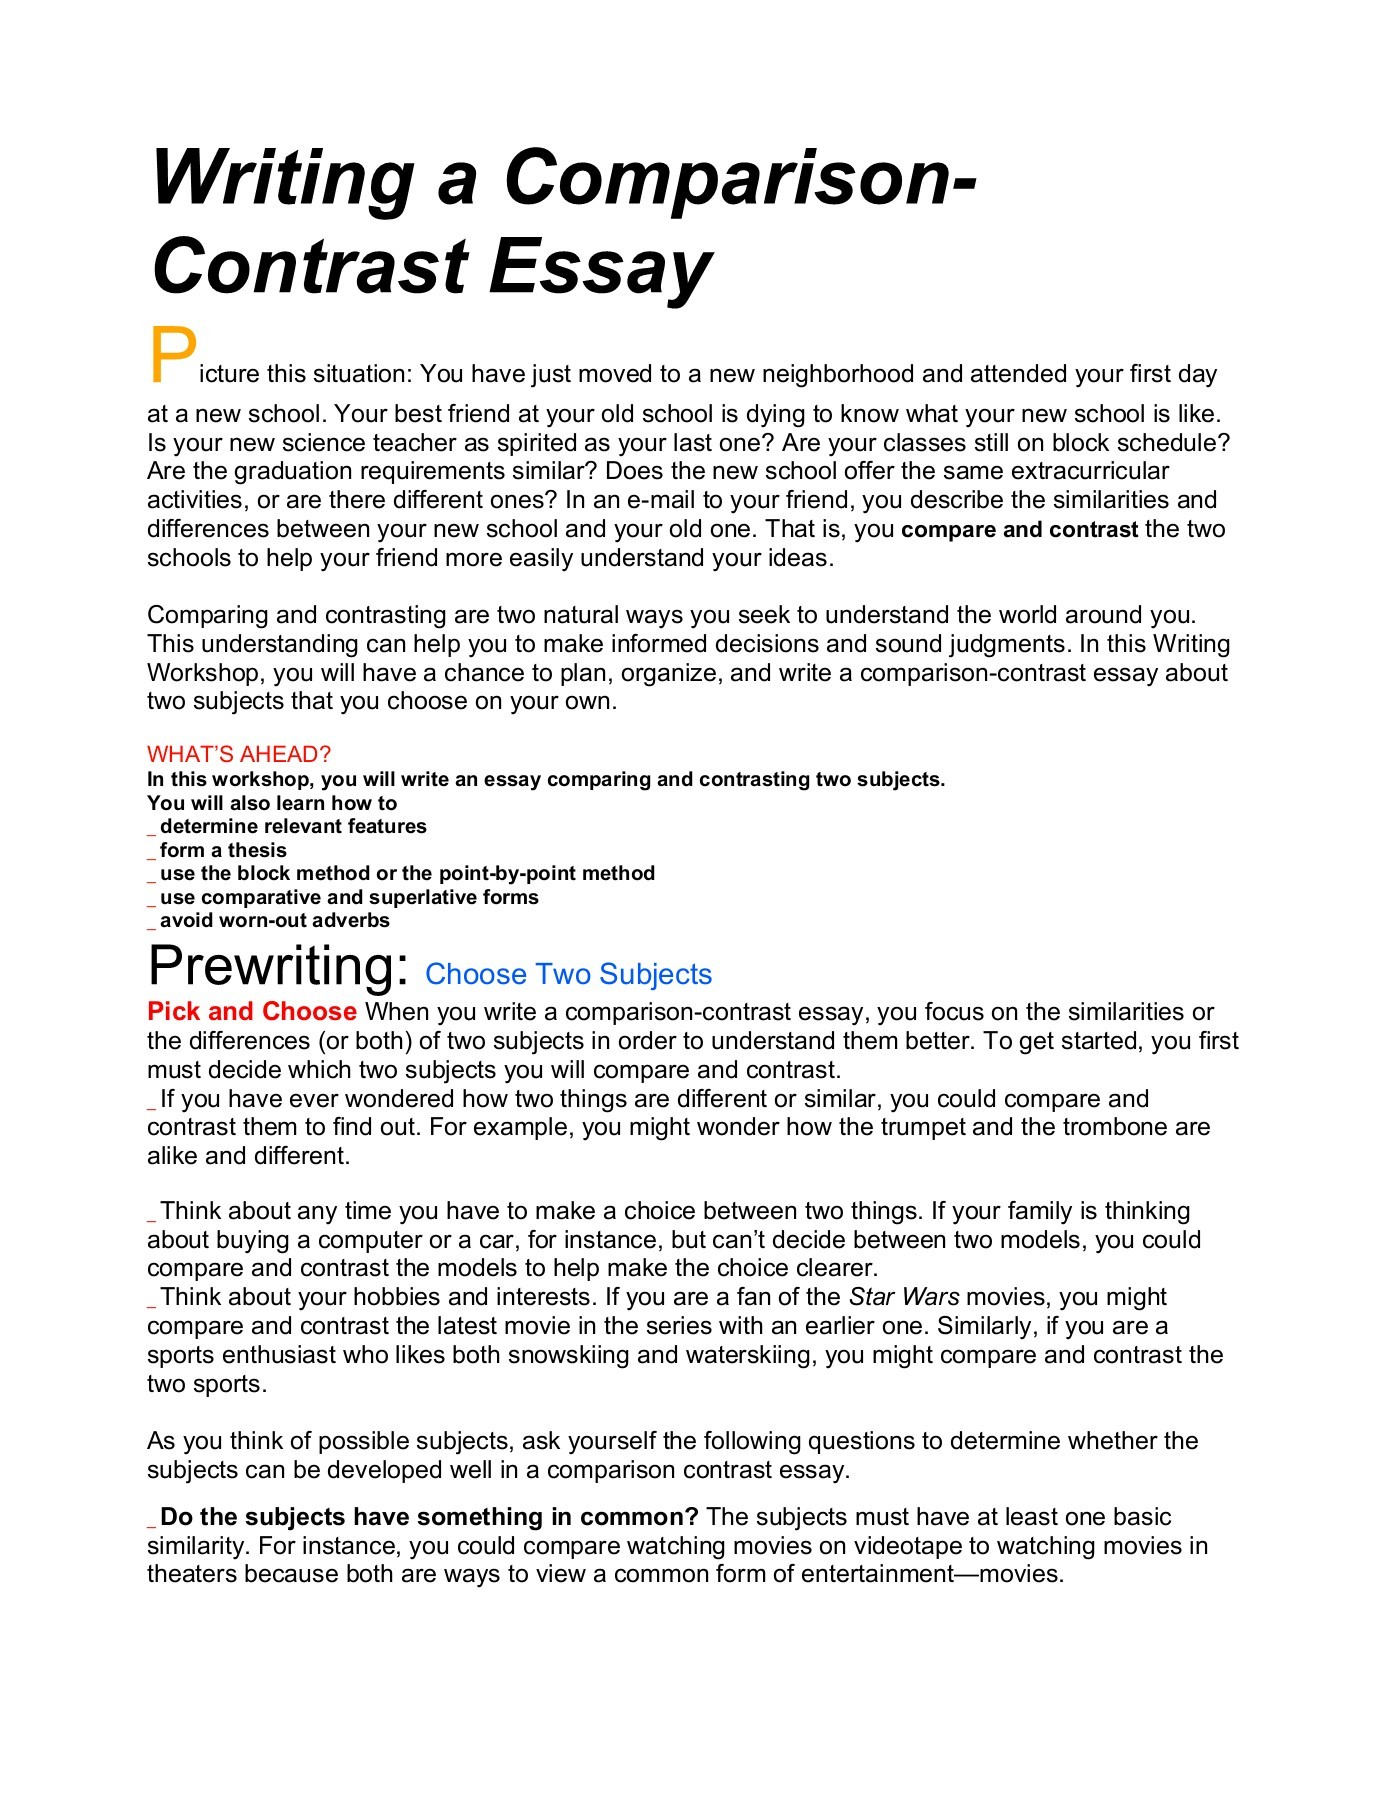 006 Essay Example Comparison And Awful Contrast Rubric Compare Template Word Full